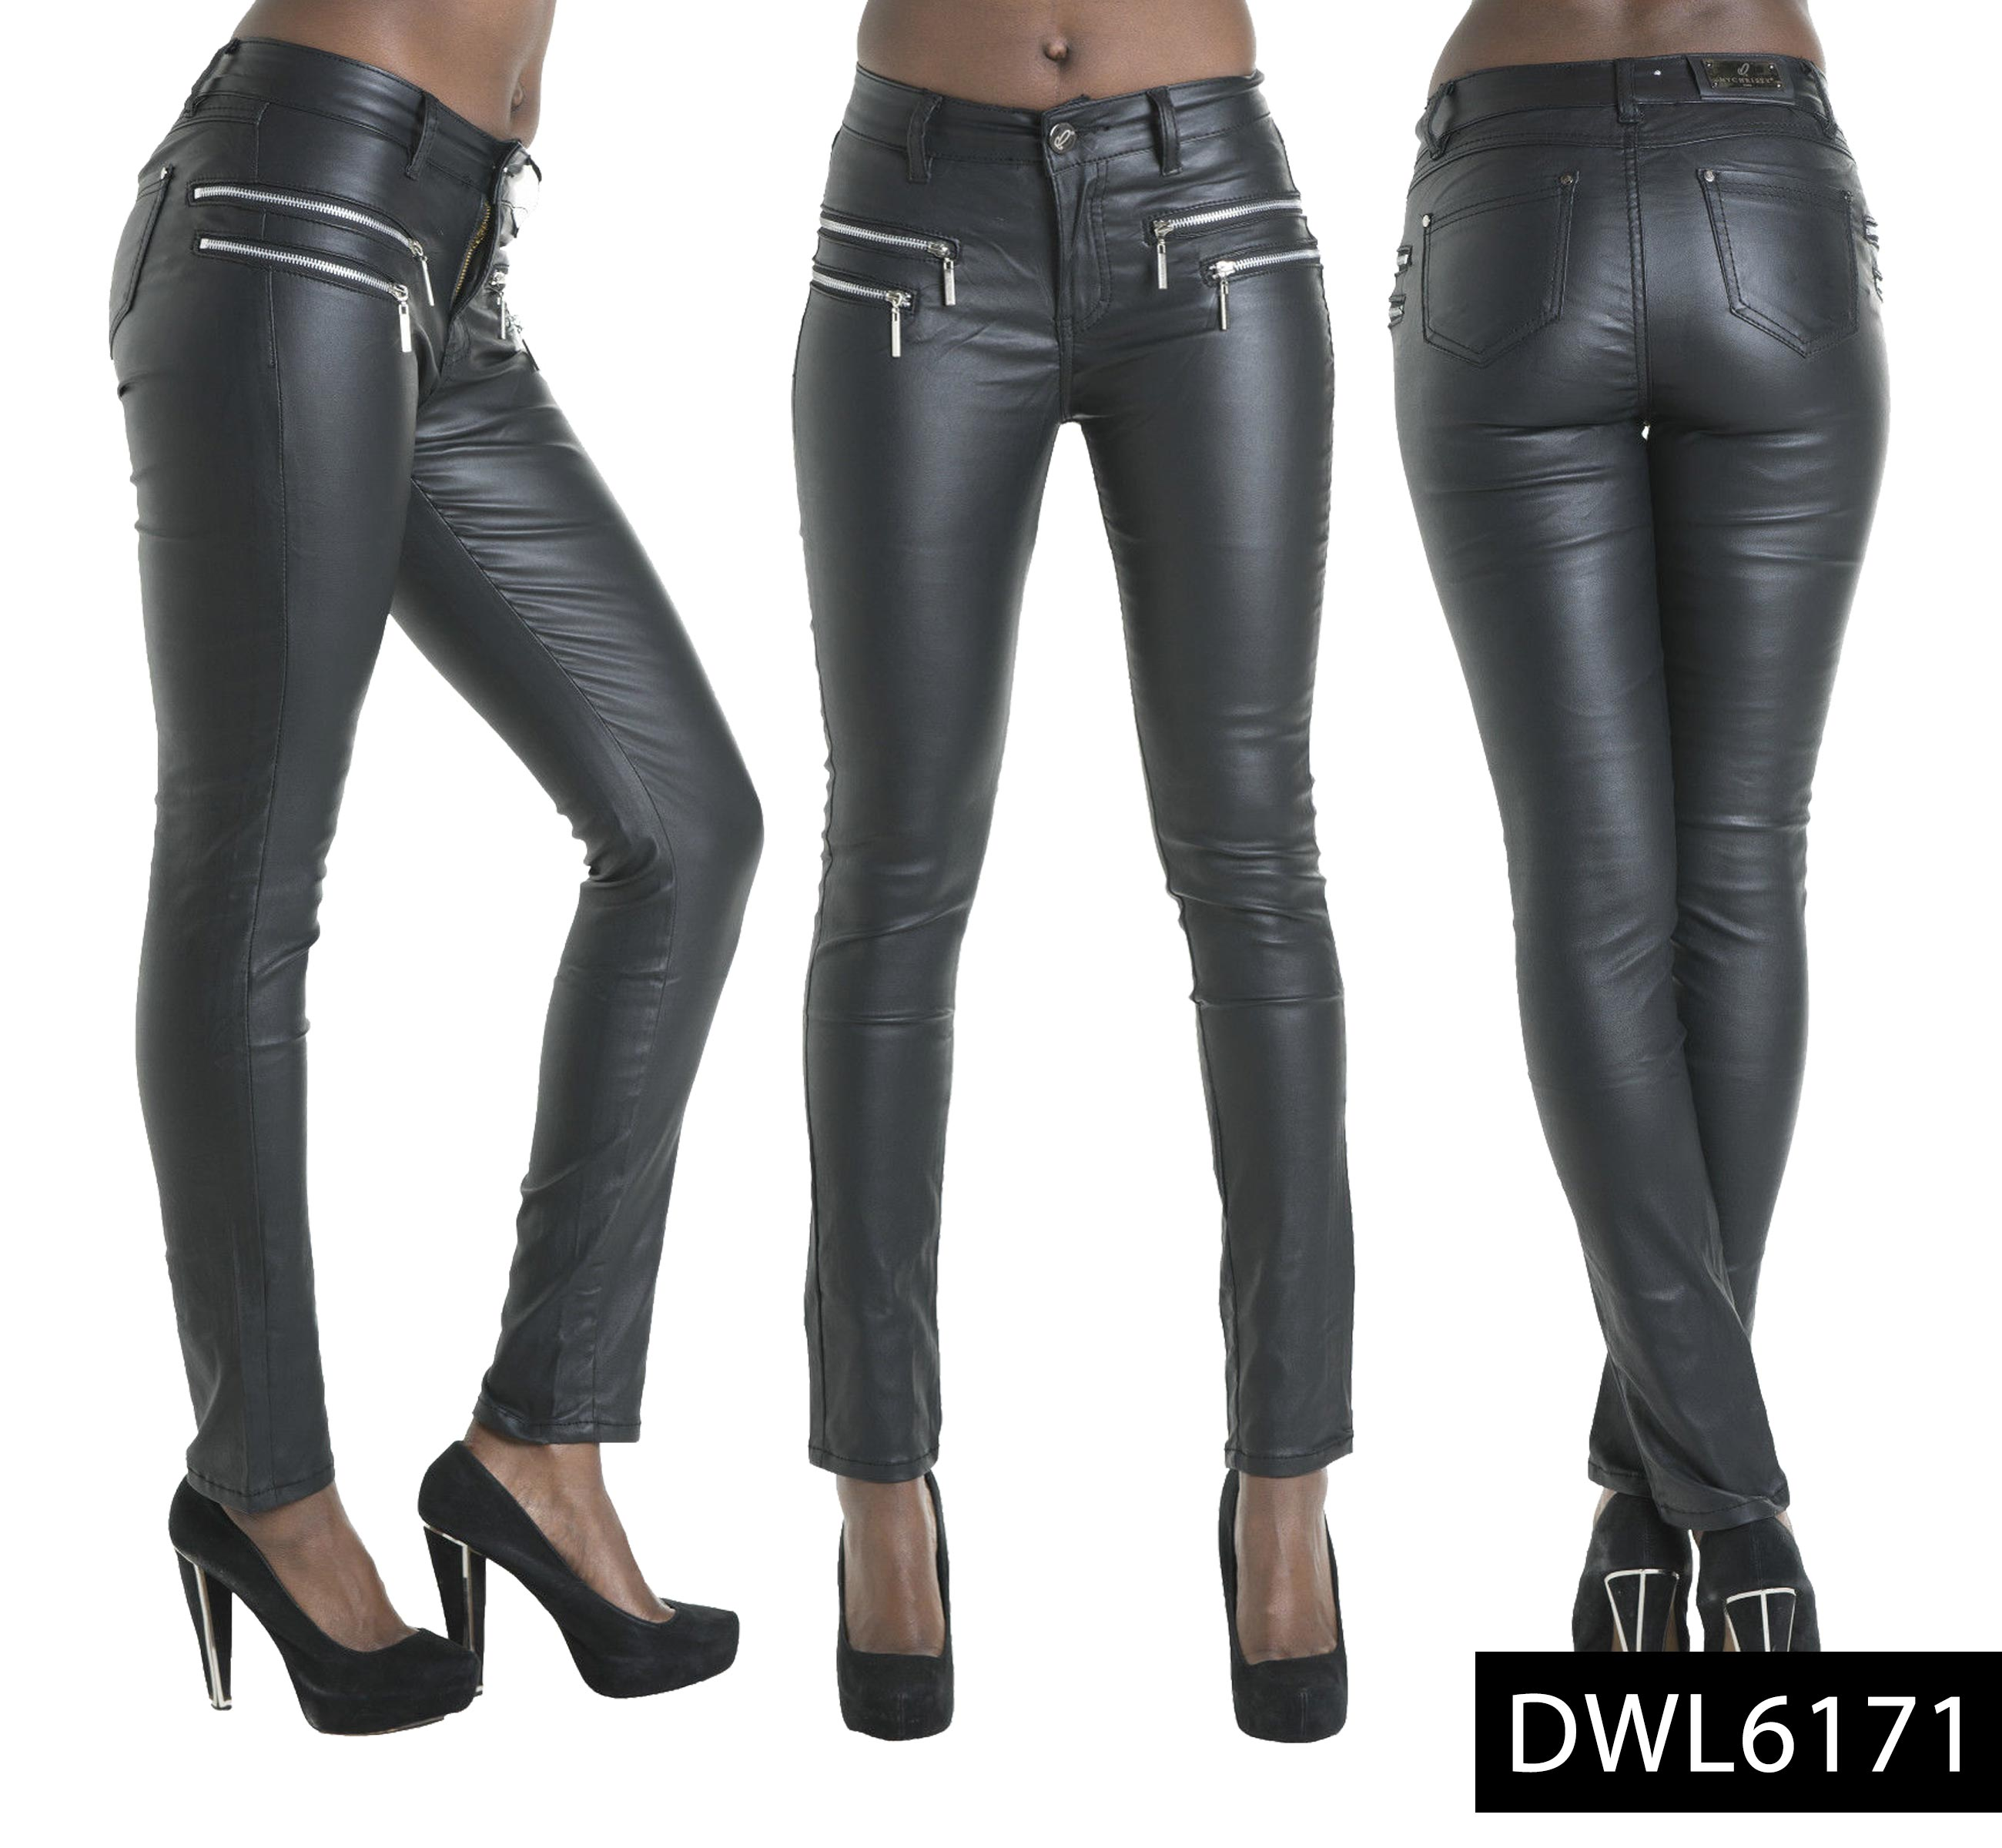 New Hot Black Lady Leather Look Cotton stitching Stretch Tights Shiny Pants See more like this. Women's Wet Look Stretchy Pants Faux Leather Skinny Leggings Pencil Trousers. WOMEN'S BLACK LEATHER LOOK PANTS SIZE 14 ELASTICATED WAIST/SIDE ZIPPER BY GEORGE. New (Other) $ Guaranteed by Mon, Oct. Buy It Now +$ shipping.